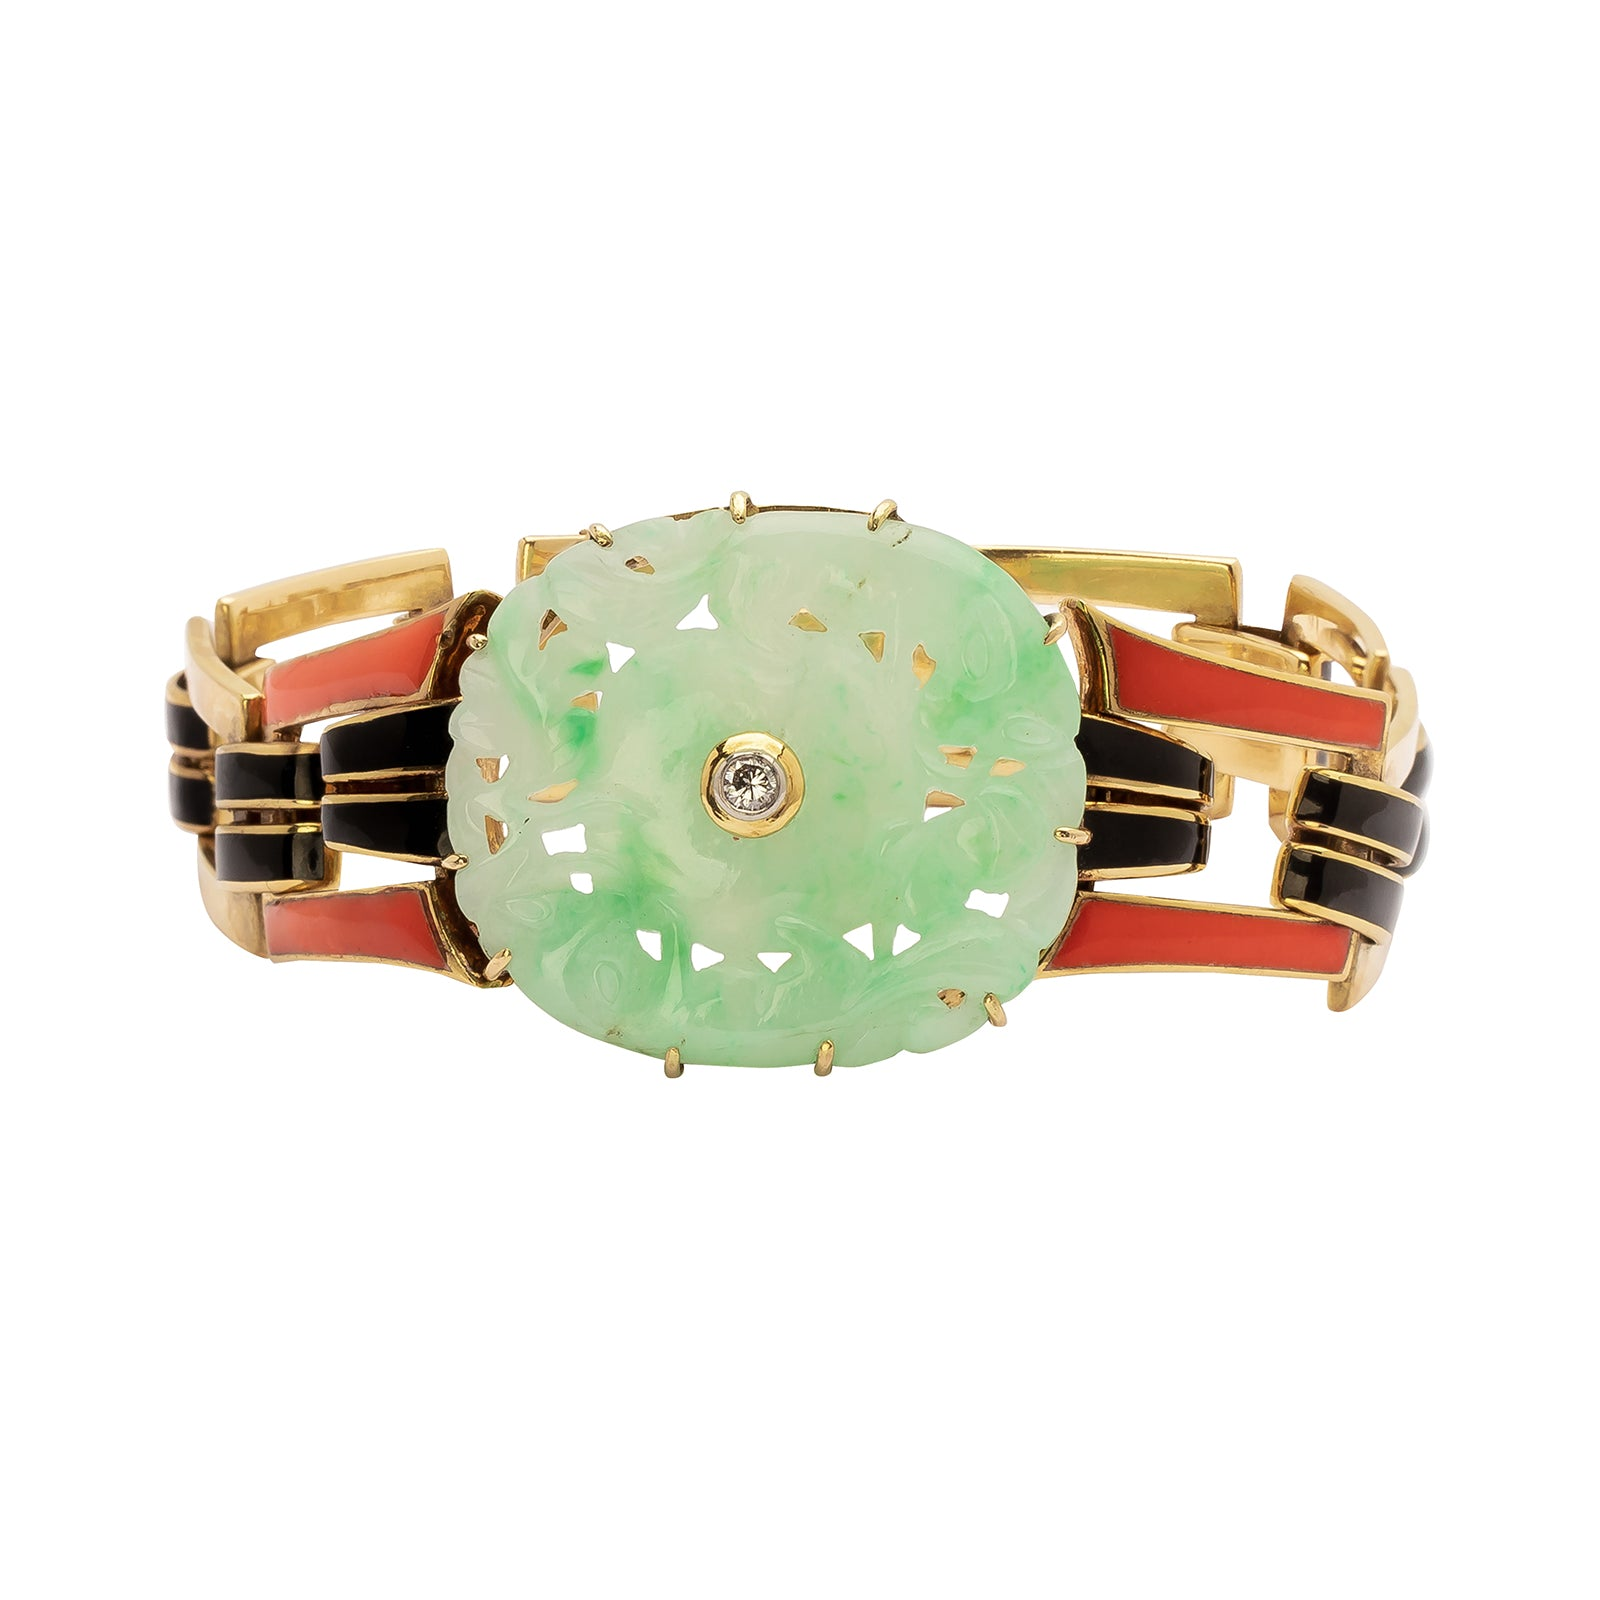 Antique & Vintage Jewelry Cartier Jade & Enamel Bracelet - Bracelets - Broken English Jewelry